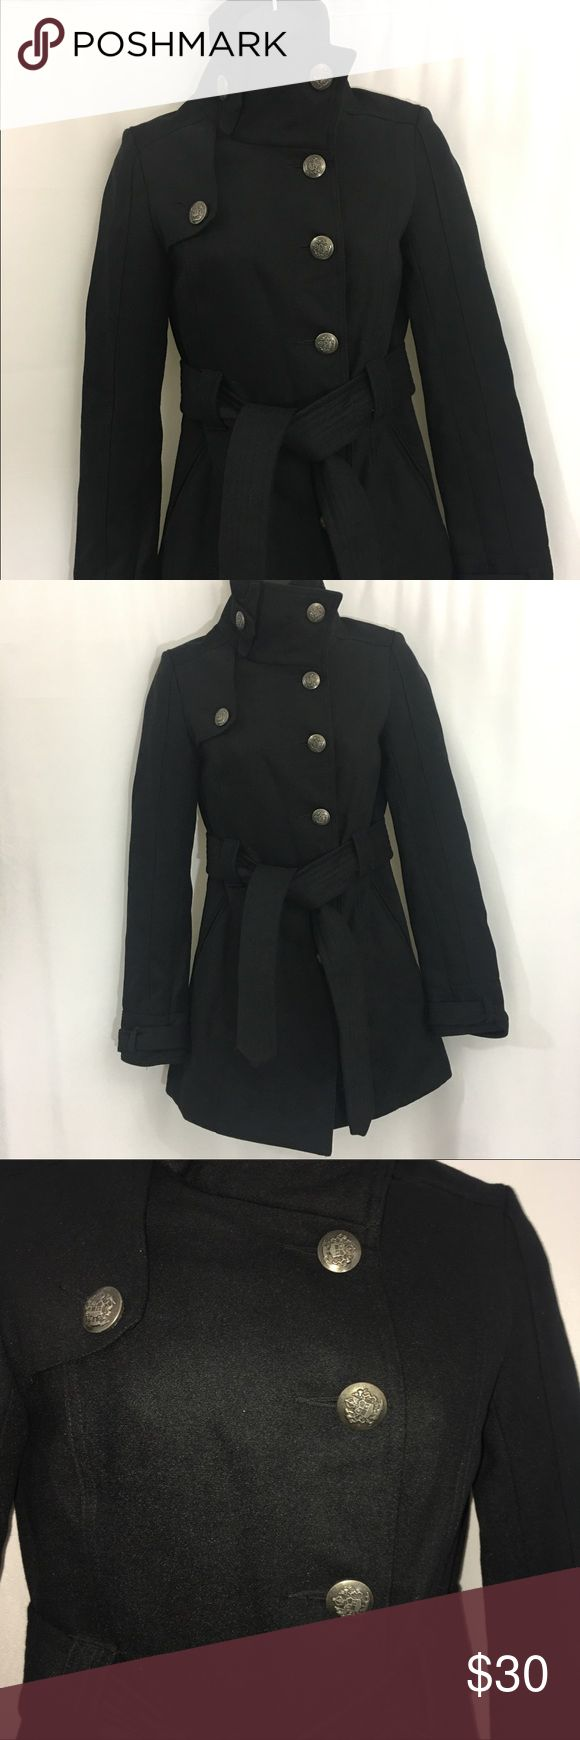 Women's Military Jacket Great condition no sign of wear.  Polyester lining. Size XS Jackets & Coats Utility Jackets